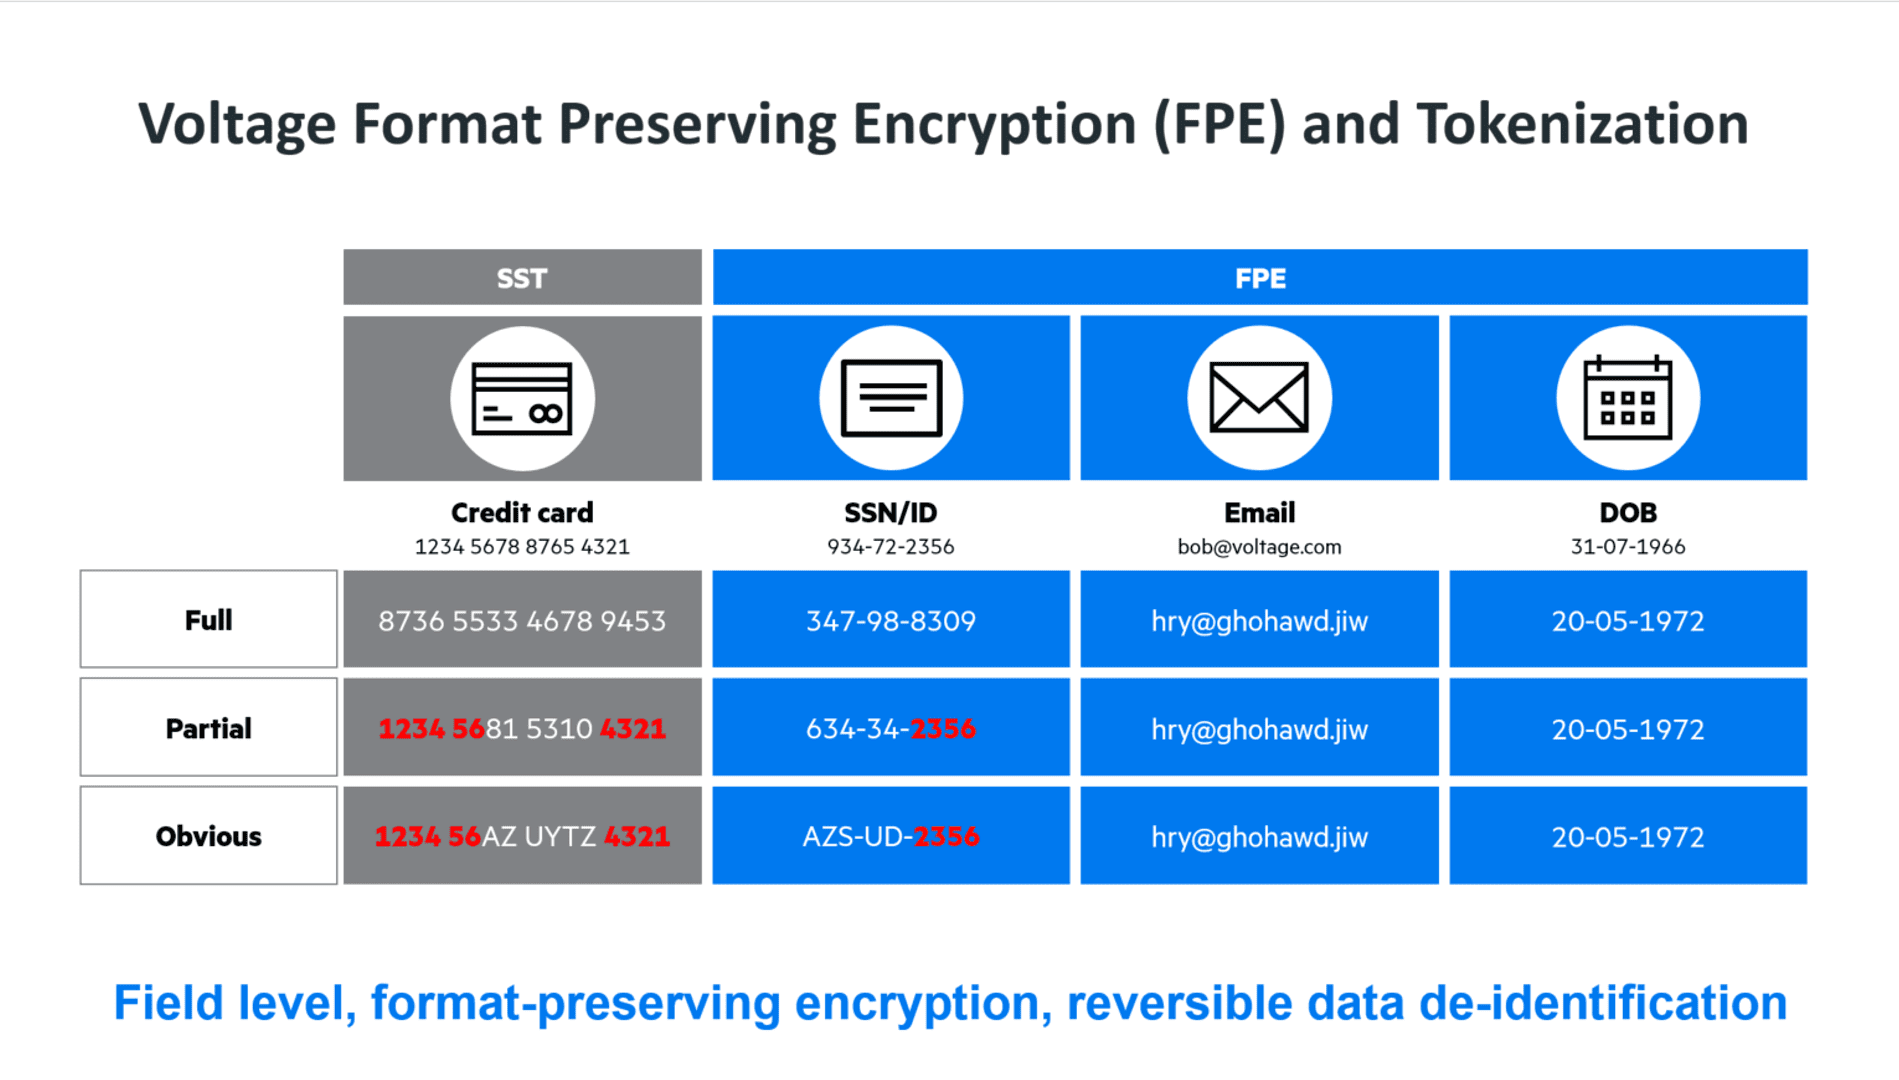 What is format-preserving encryption?